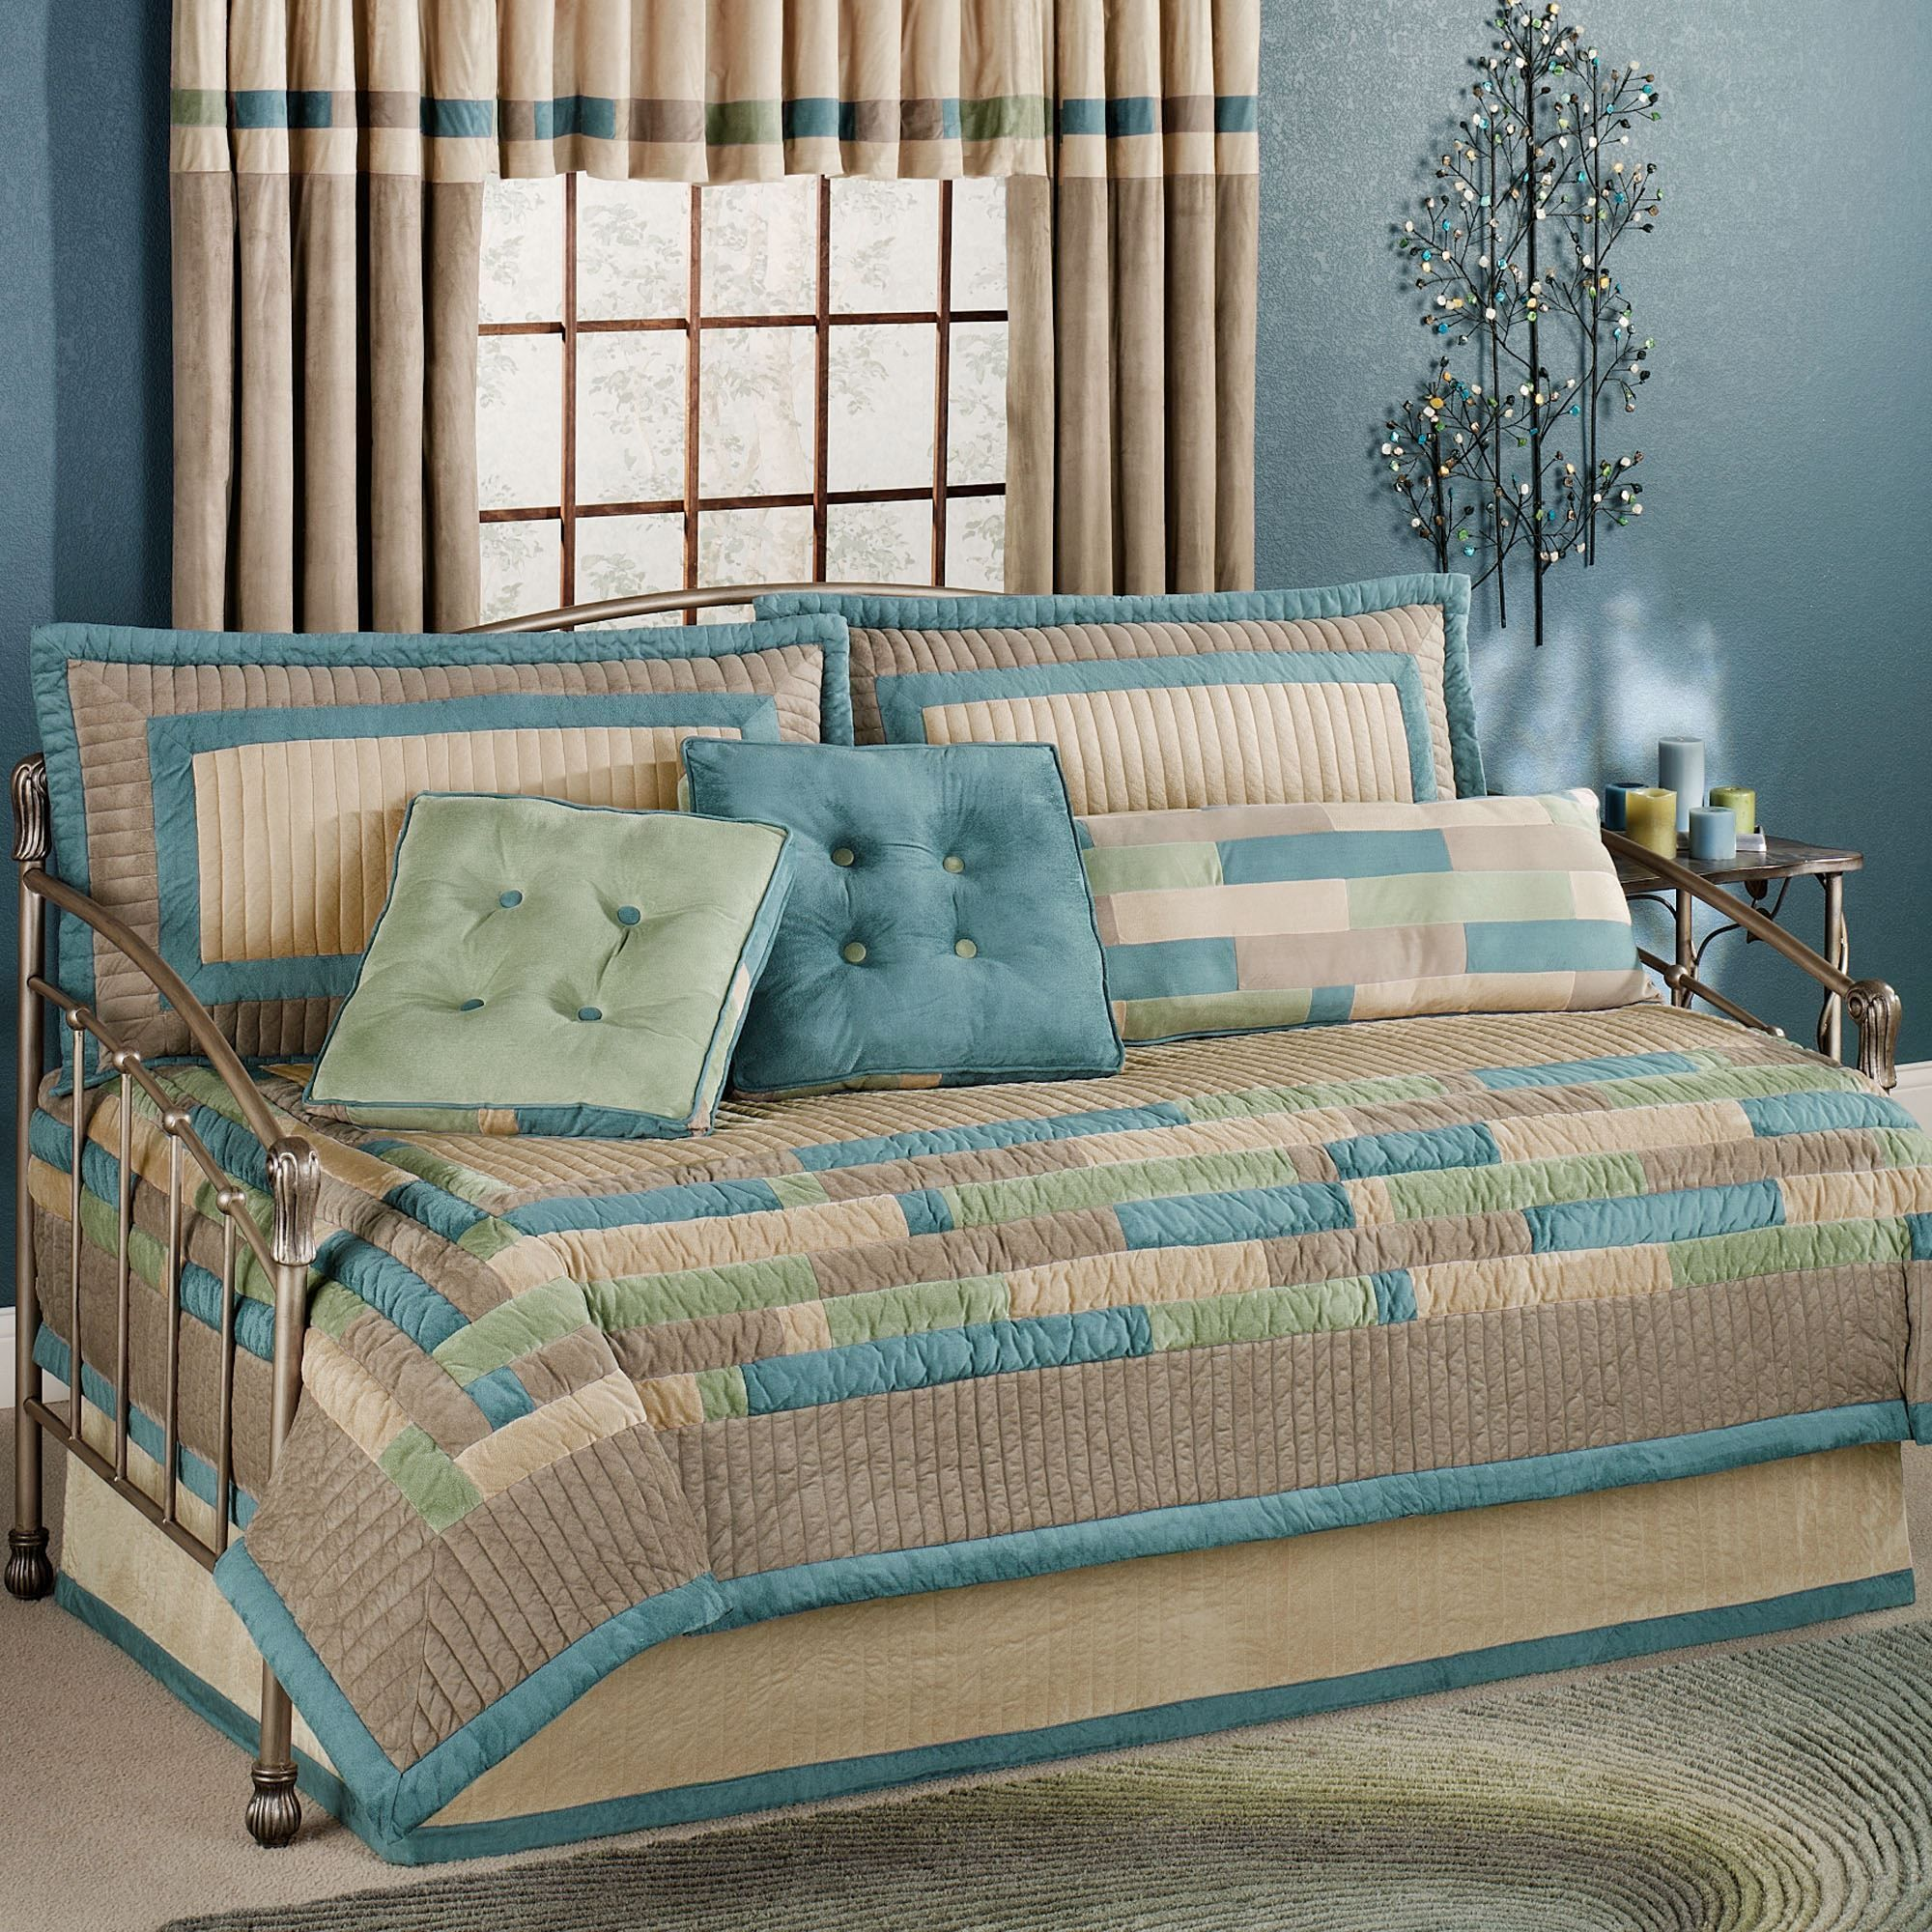 daybed hero know overstock guides quilt need you about to quilts everything com bedding